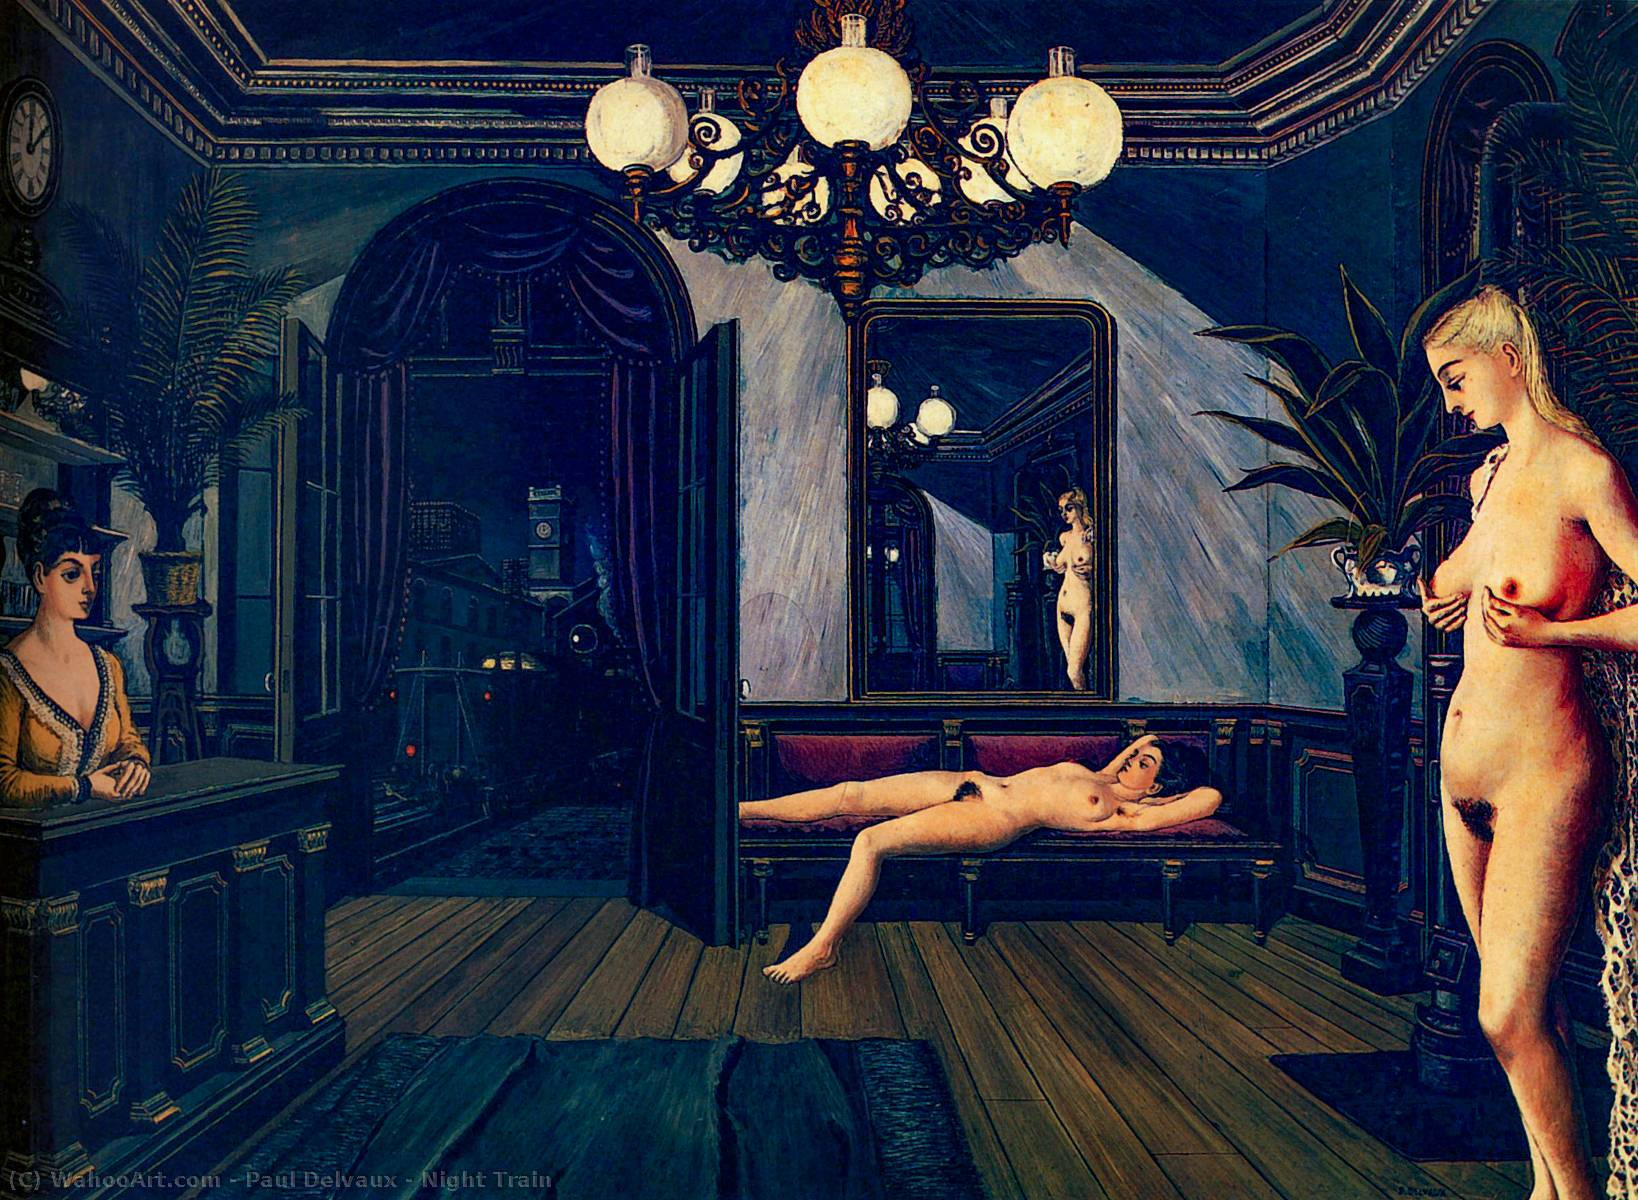 | treno notturno di Paul Delvaux | Most-Famous-Paintings.com